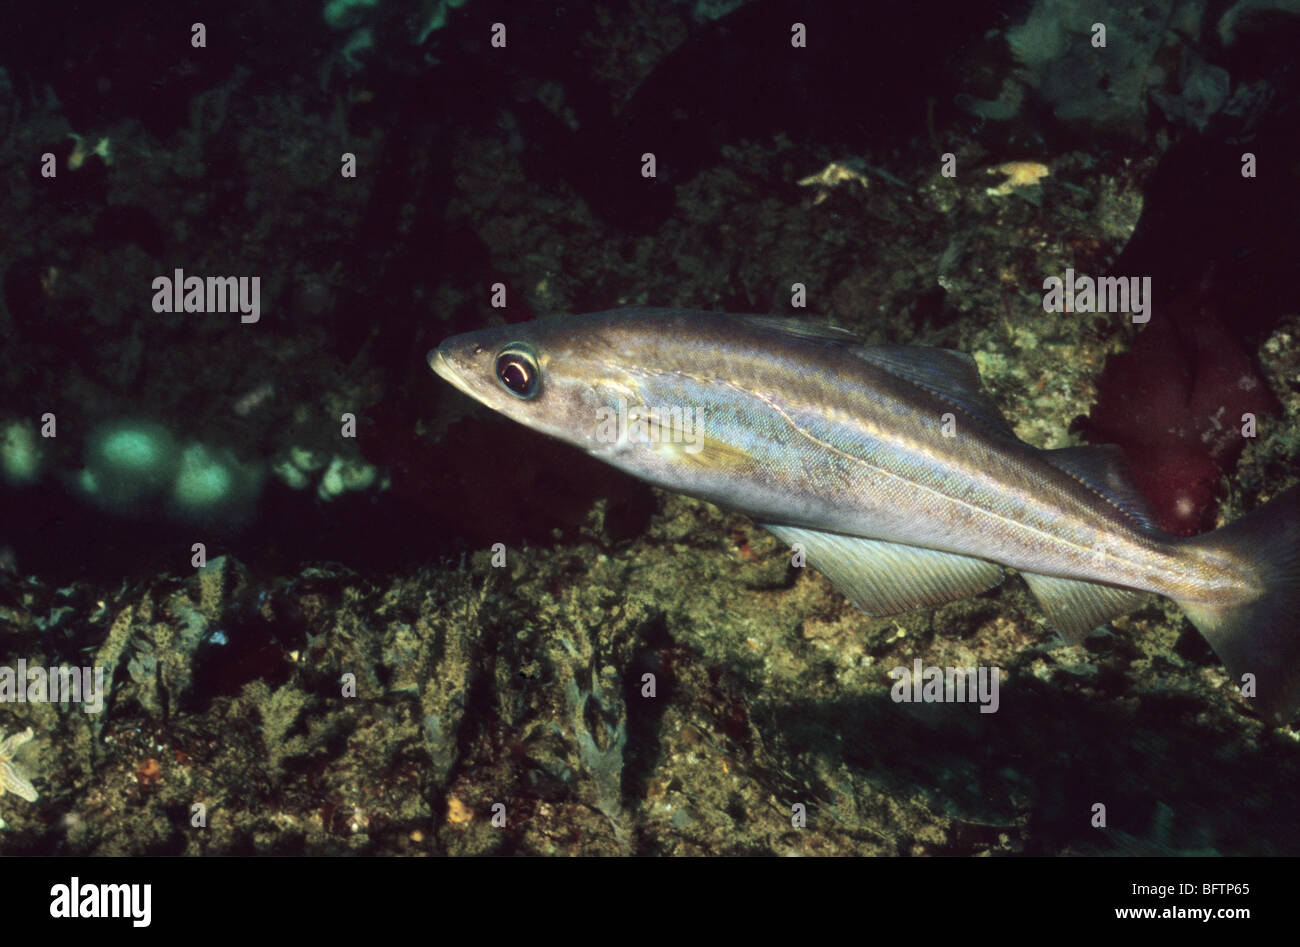 Pollack. Fish. Pollachius Pollachius. Fish of the cod family. Underwater marine life off the coast of Plymouth UK. - Stock Image